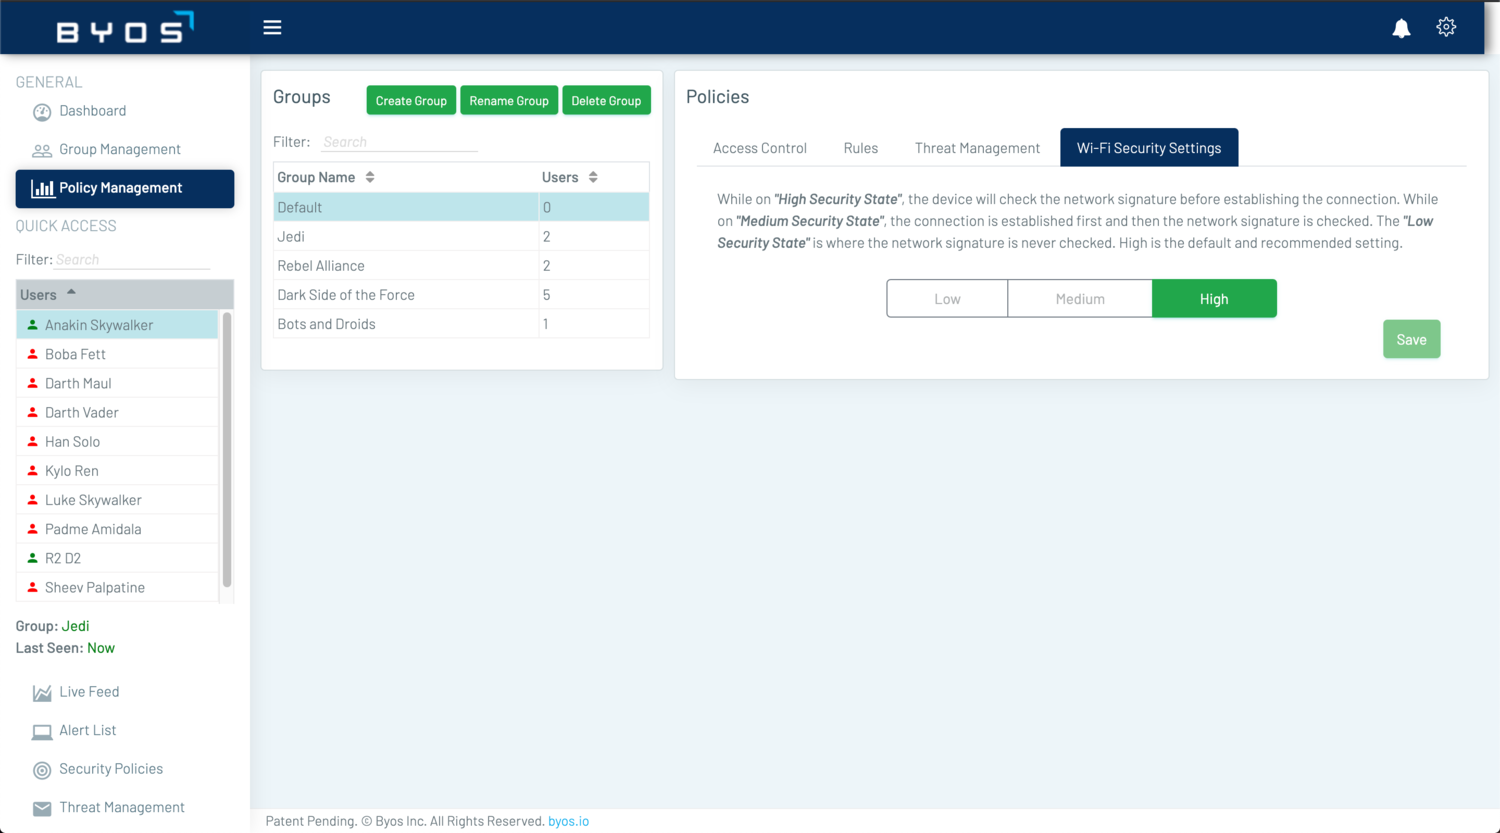 The Policy Management's Wi-Fi Security Settings feature allows the Administrator to select different levels of security during the µGateway's connection process.